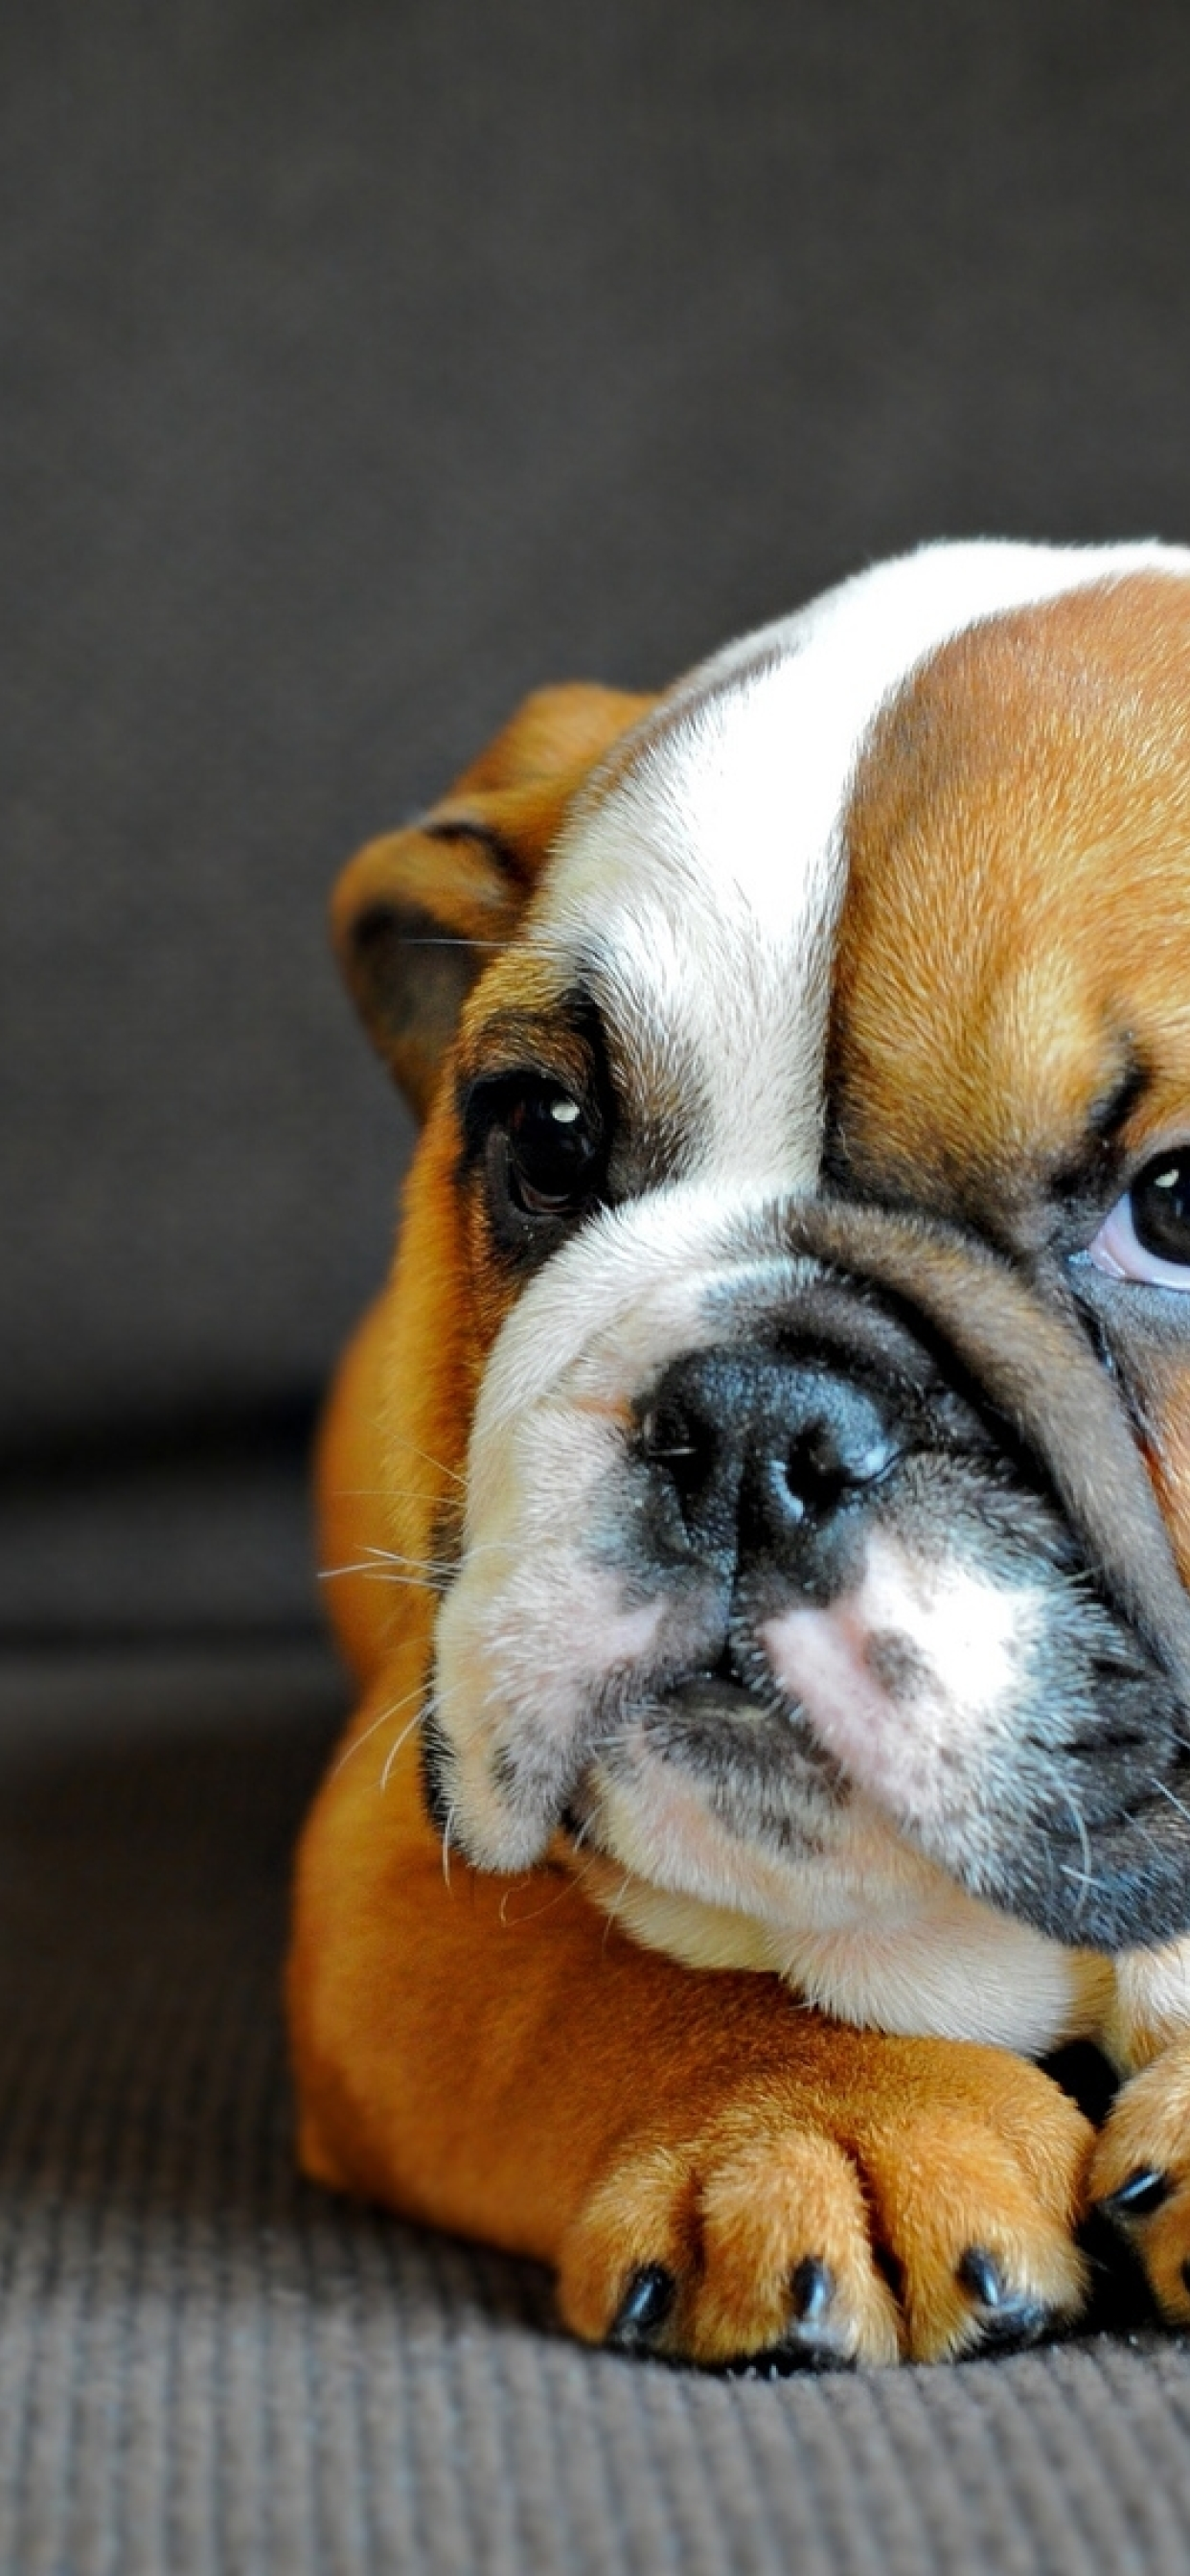 1242x2688 English Bulldog Puppy Dog Iphone Xs Max Wallpaper Hd Animals 4k Wallpapers Images Photos And Background